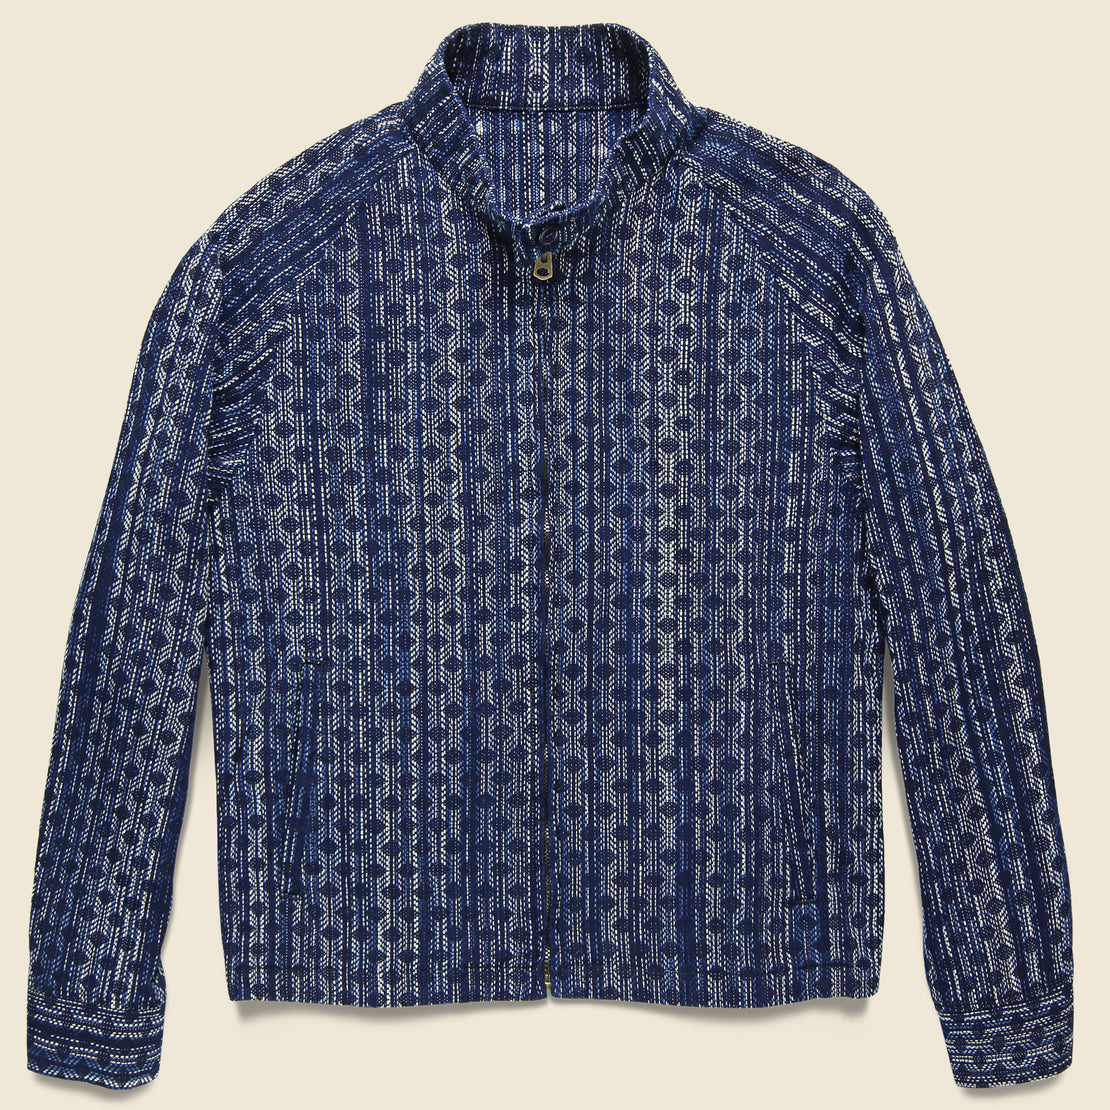 Setto Aizome Splashed Jacket - Indigo